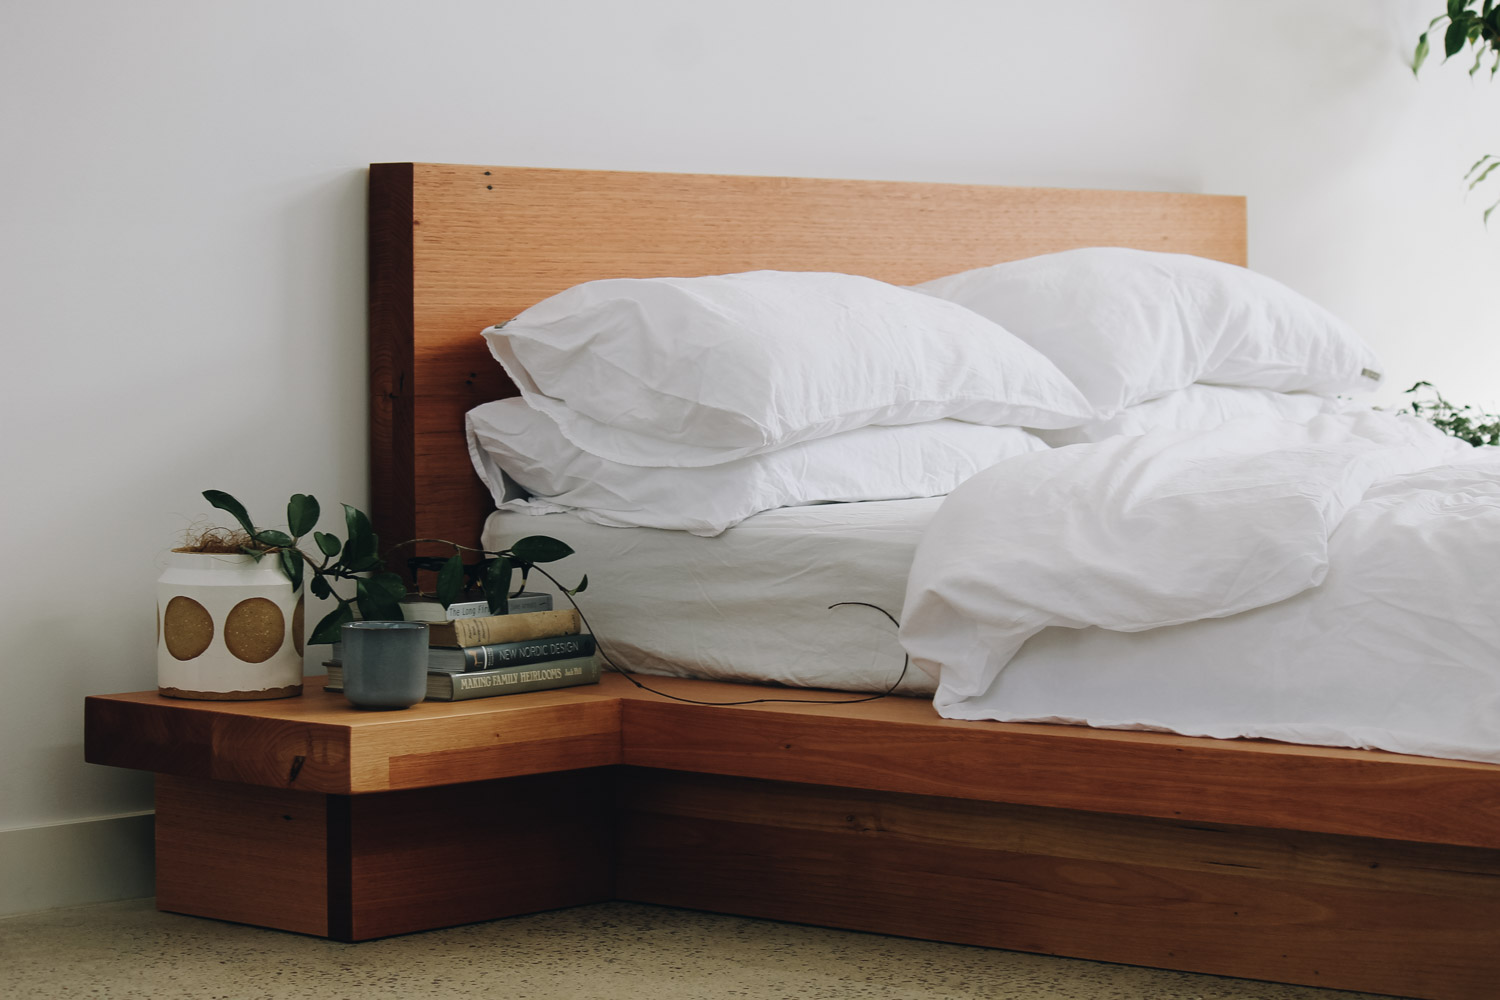 Ledge Bed - Handmade timber bed frame with built in bedside tables